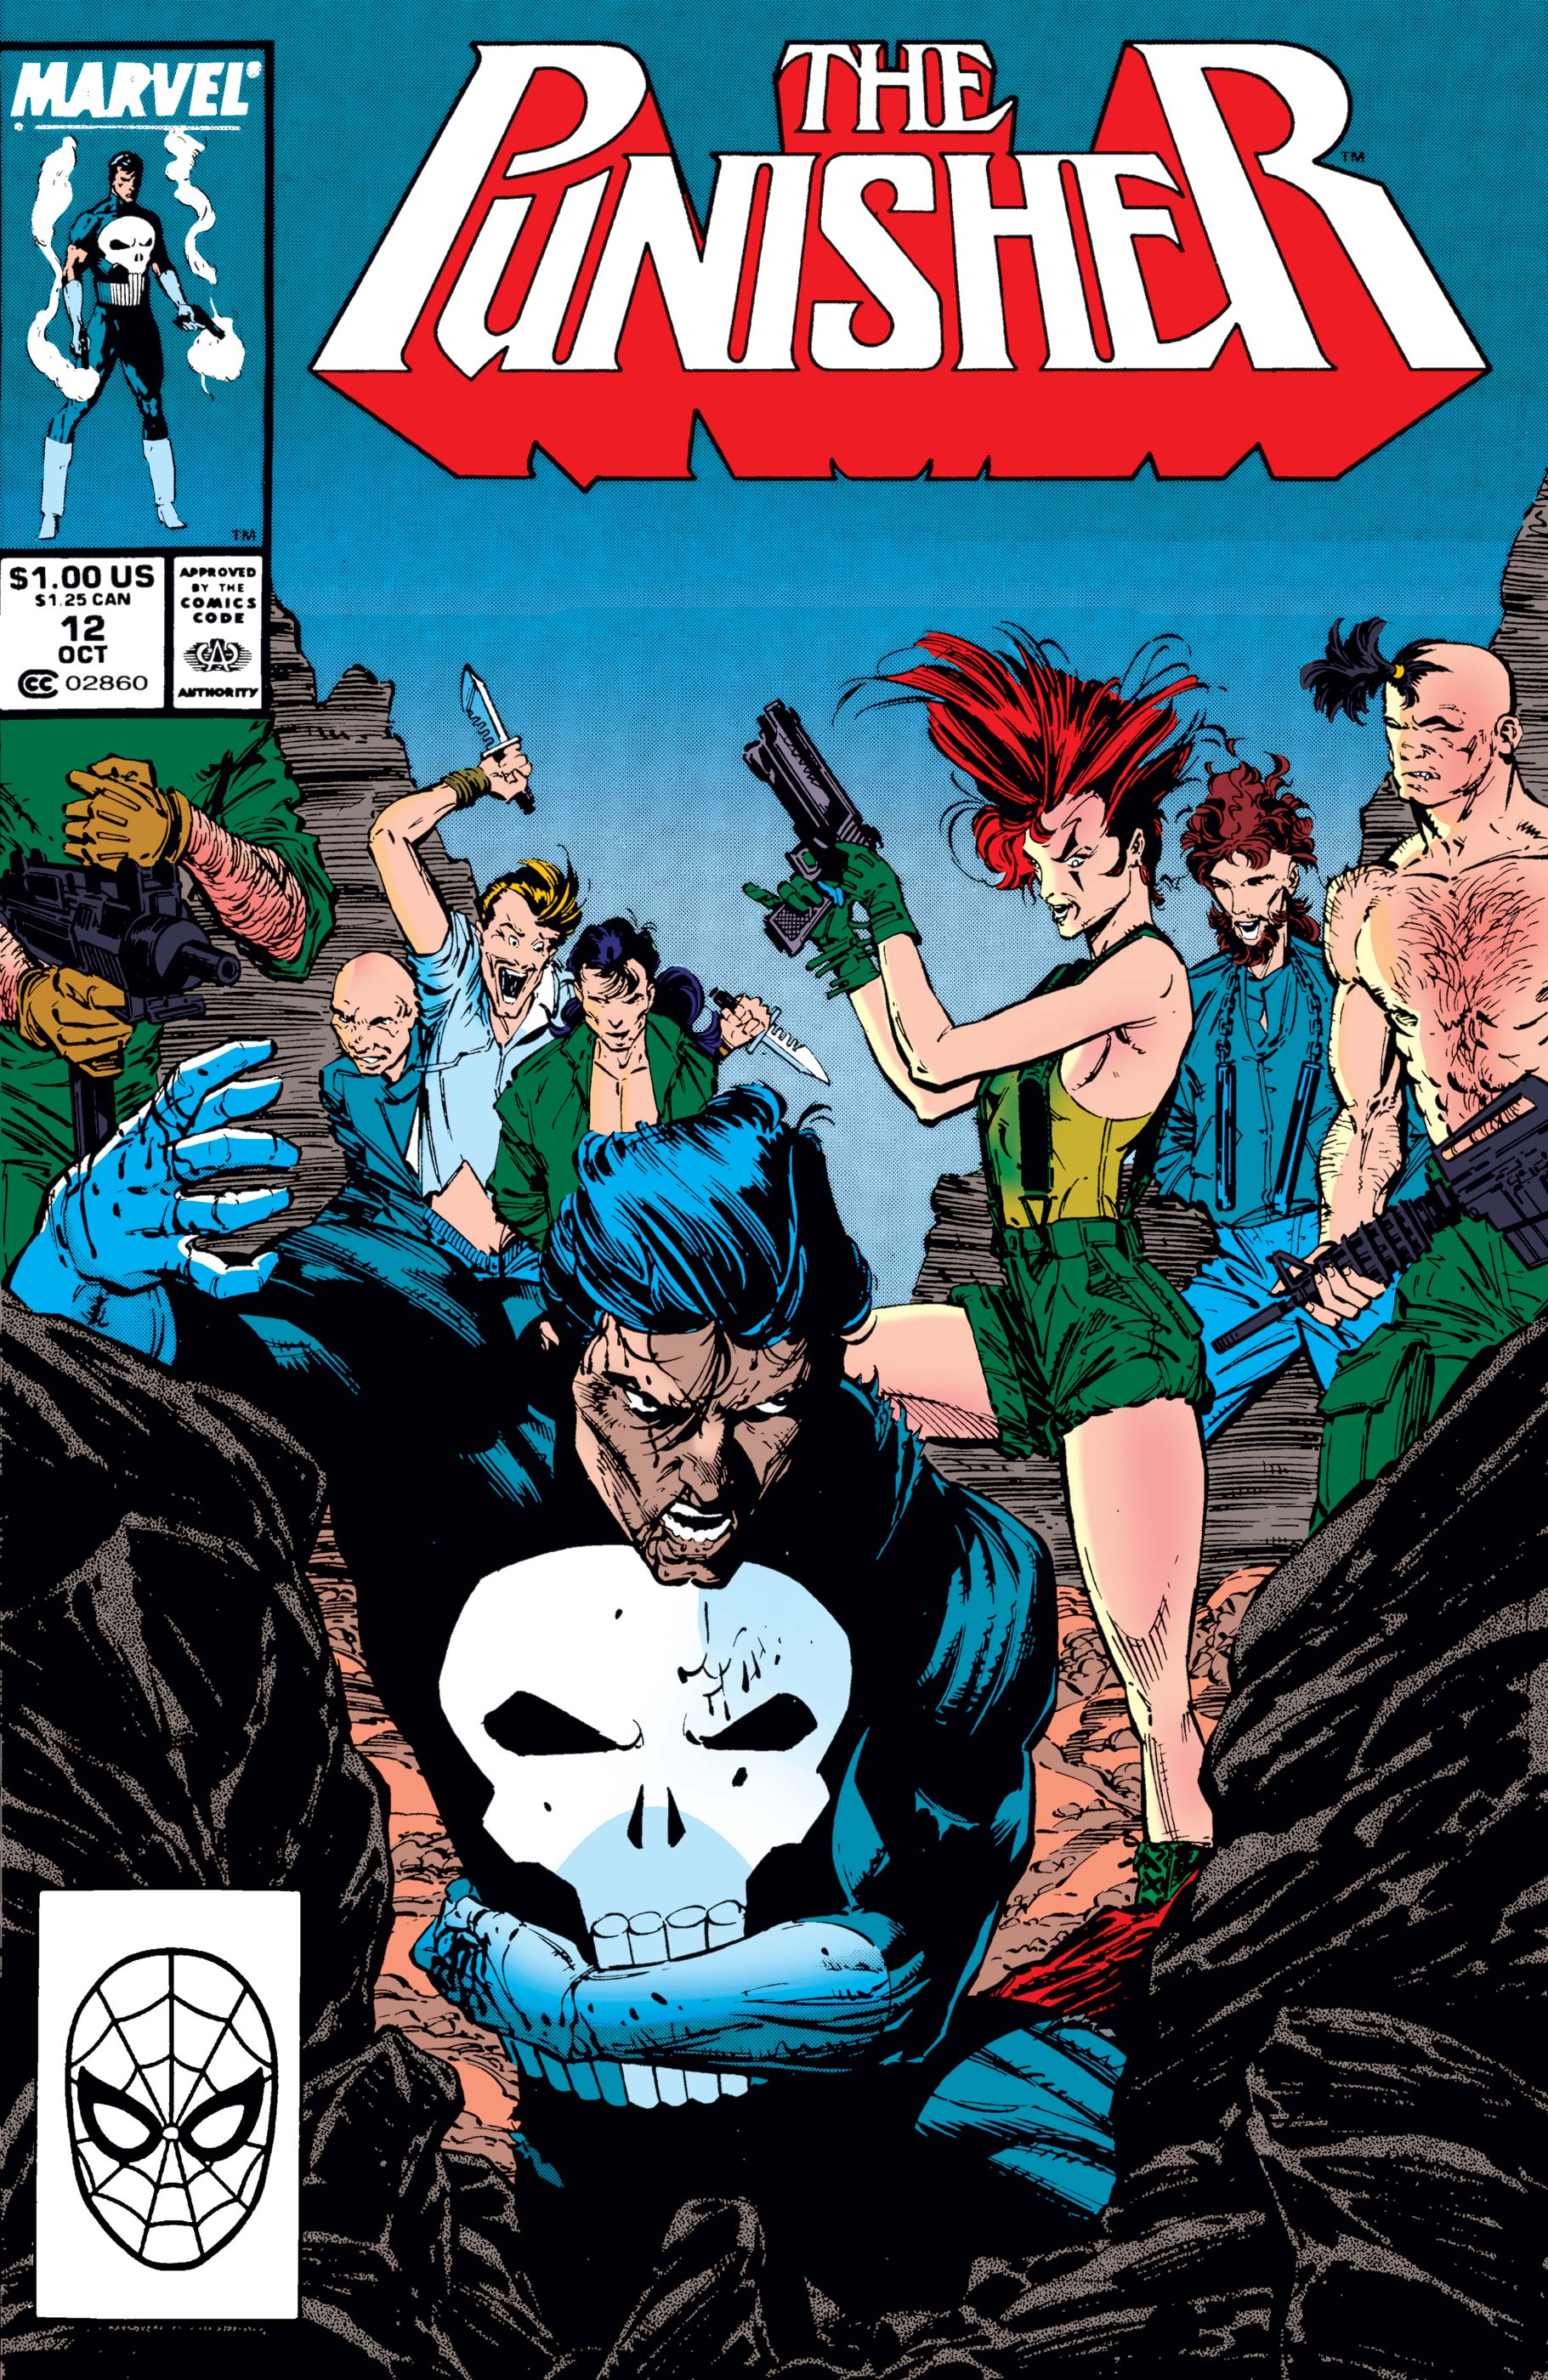 The Punisher (1987) #12